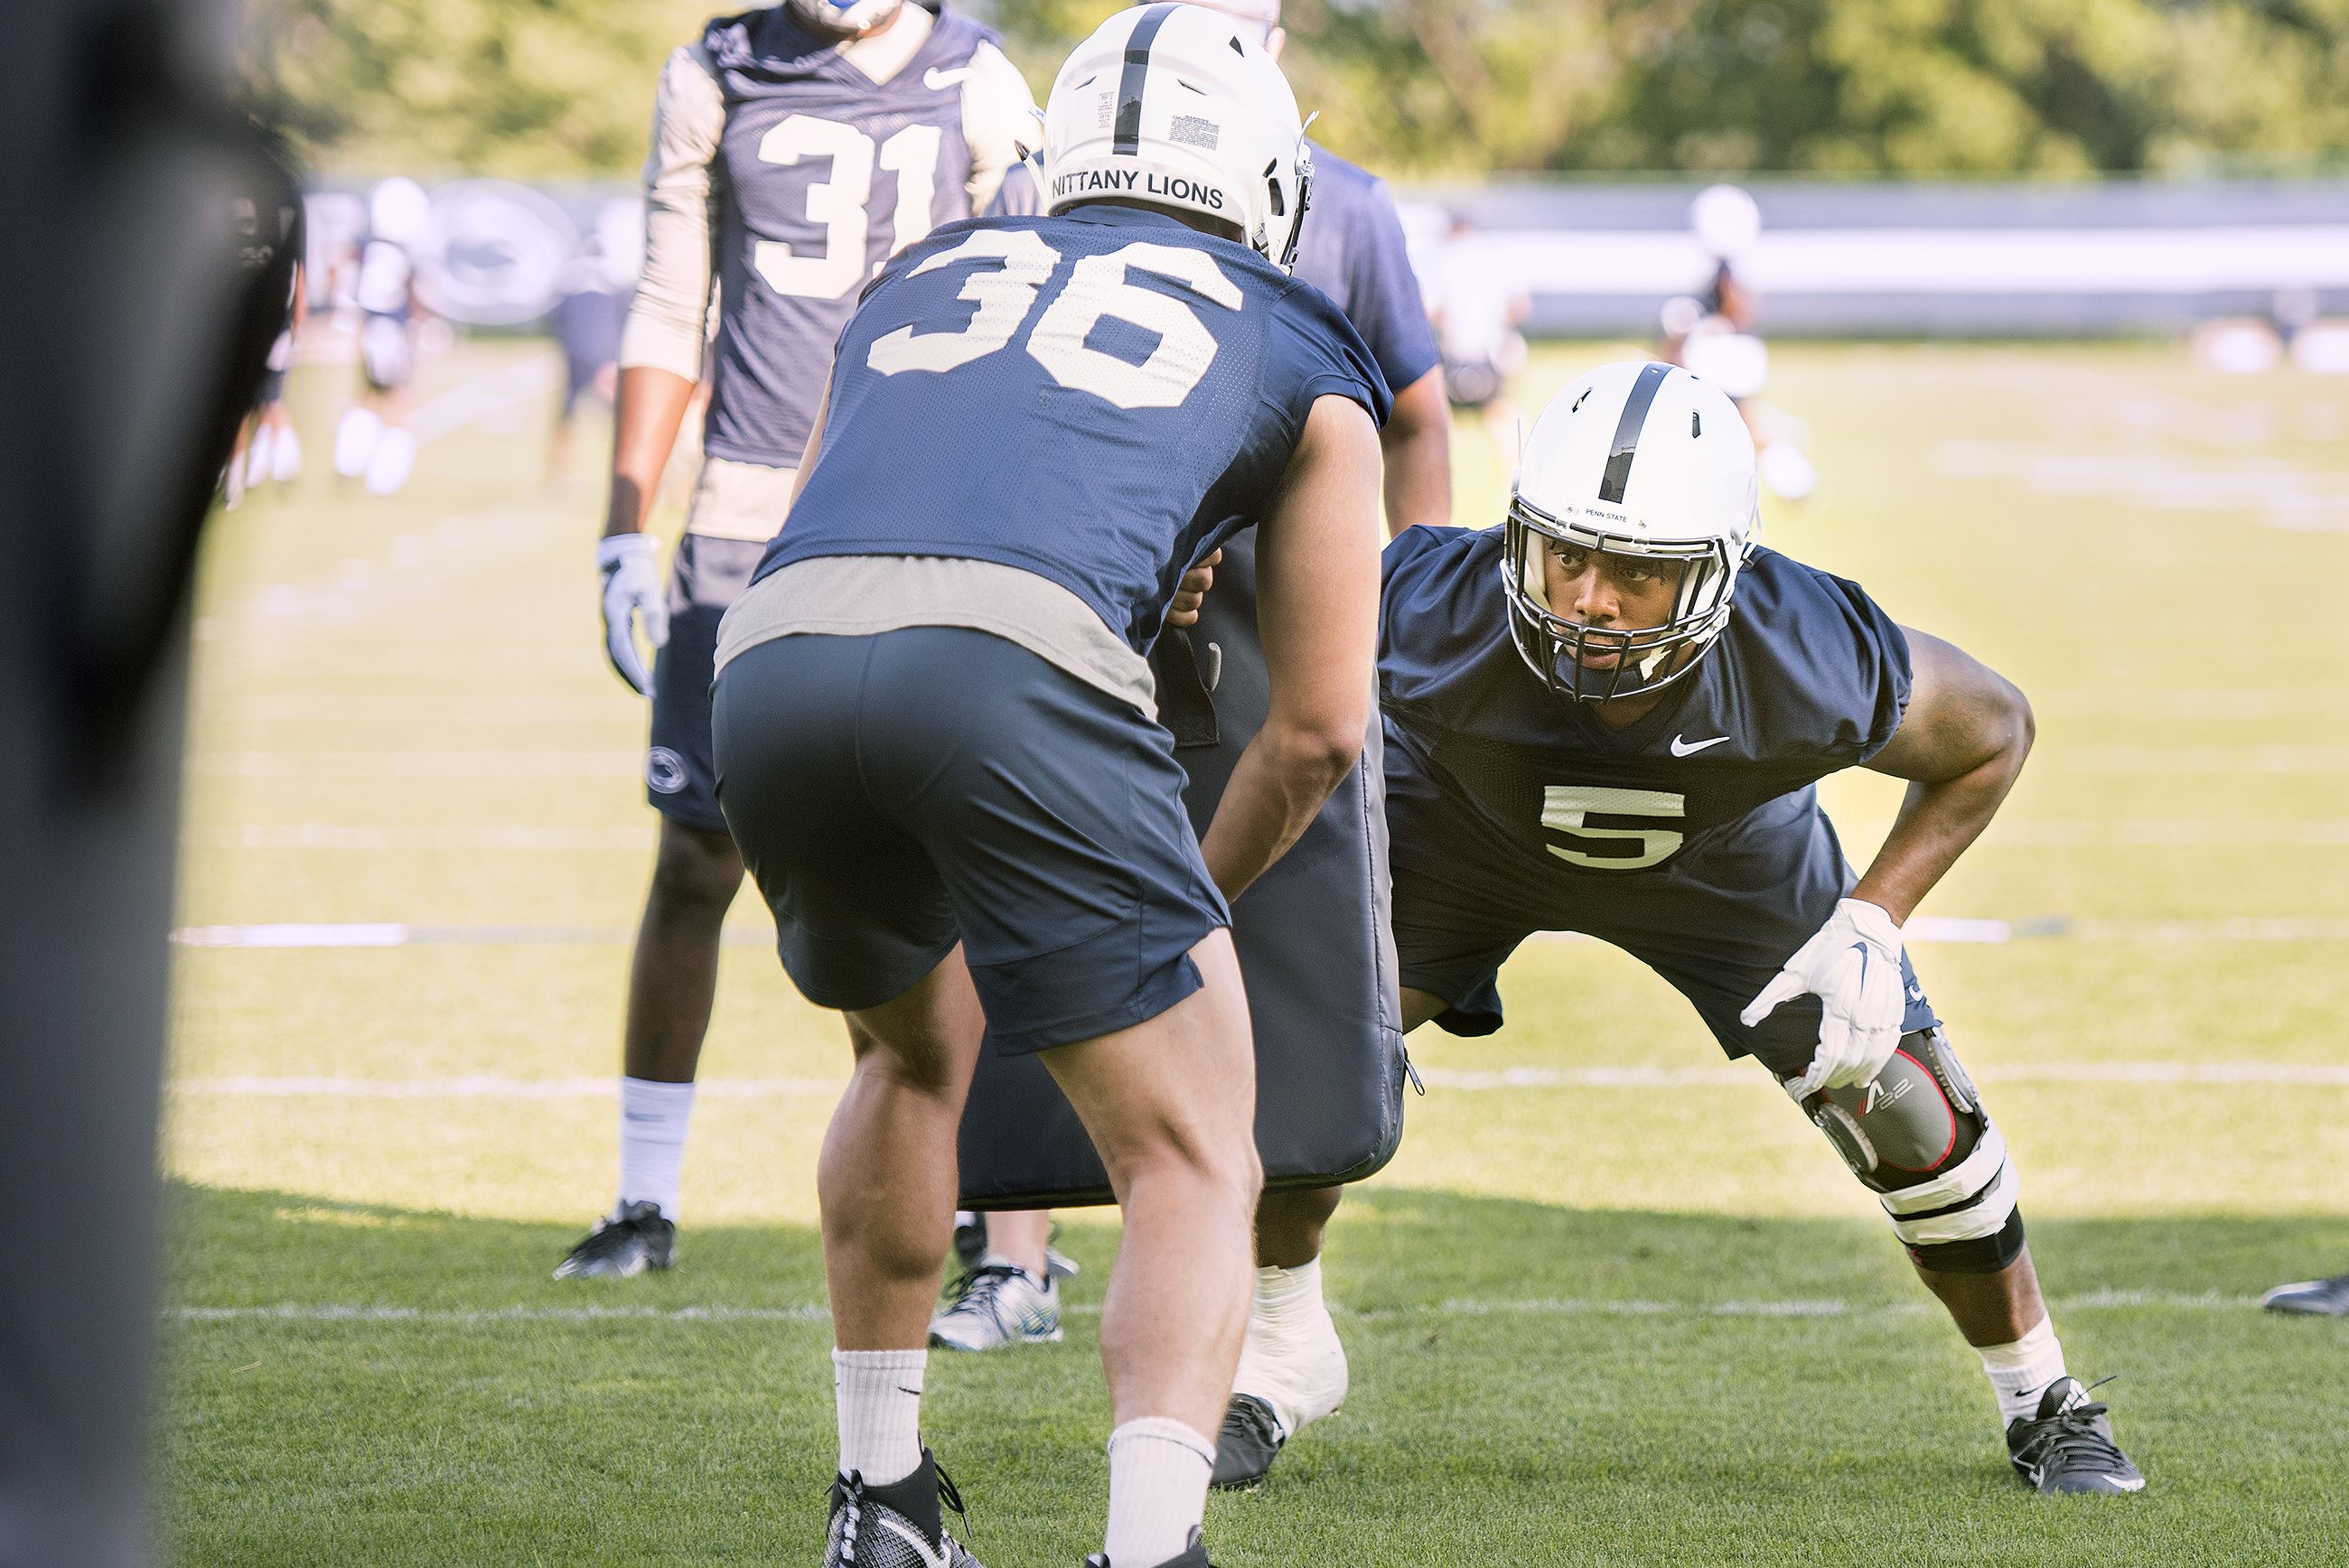 Penn State linebacker Wartman-White out for season